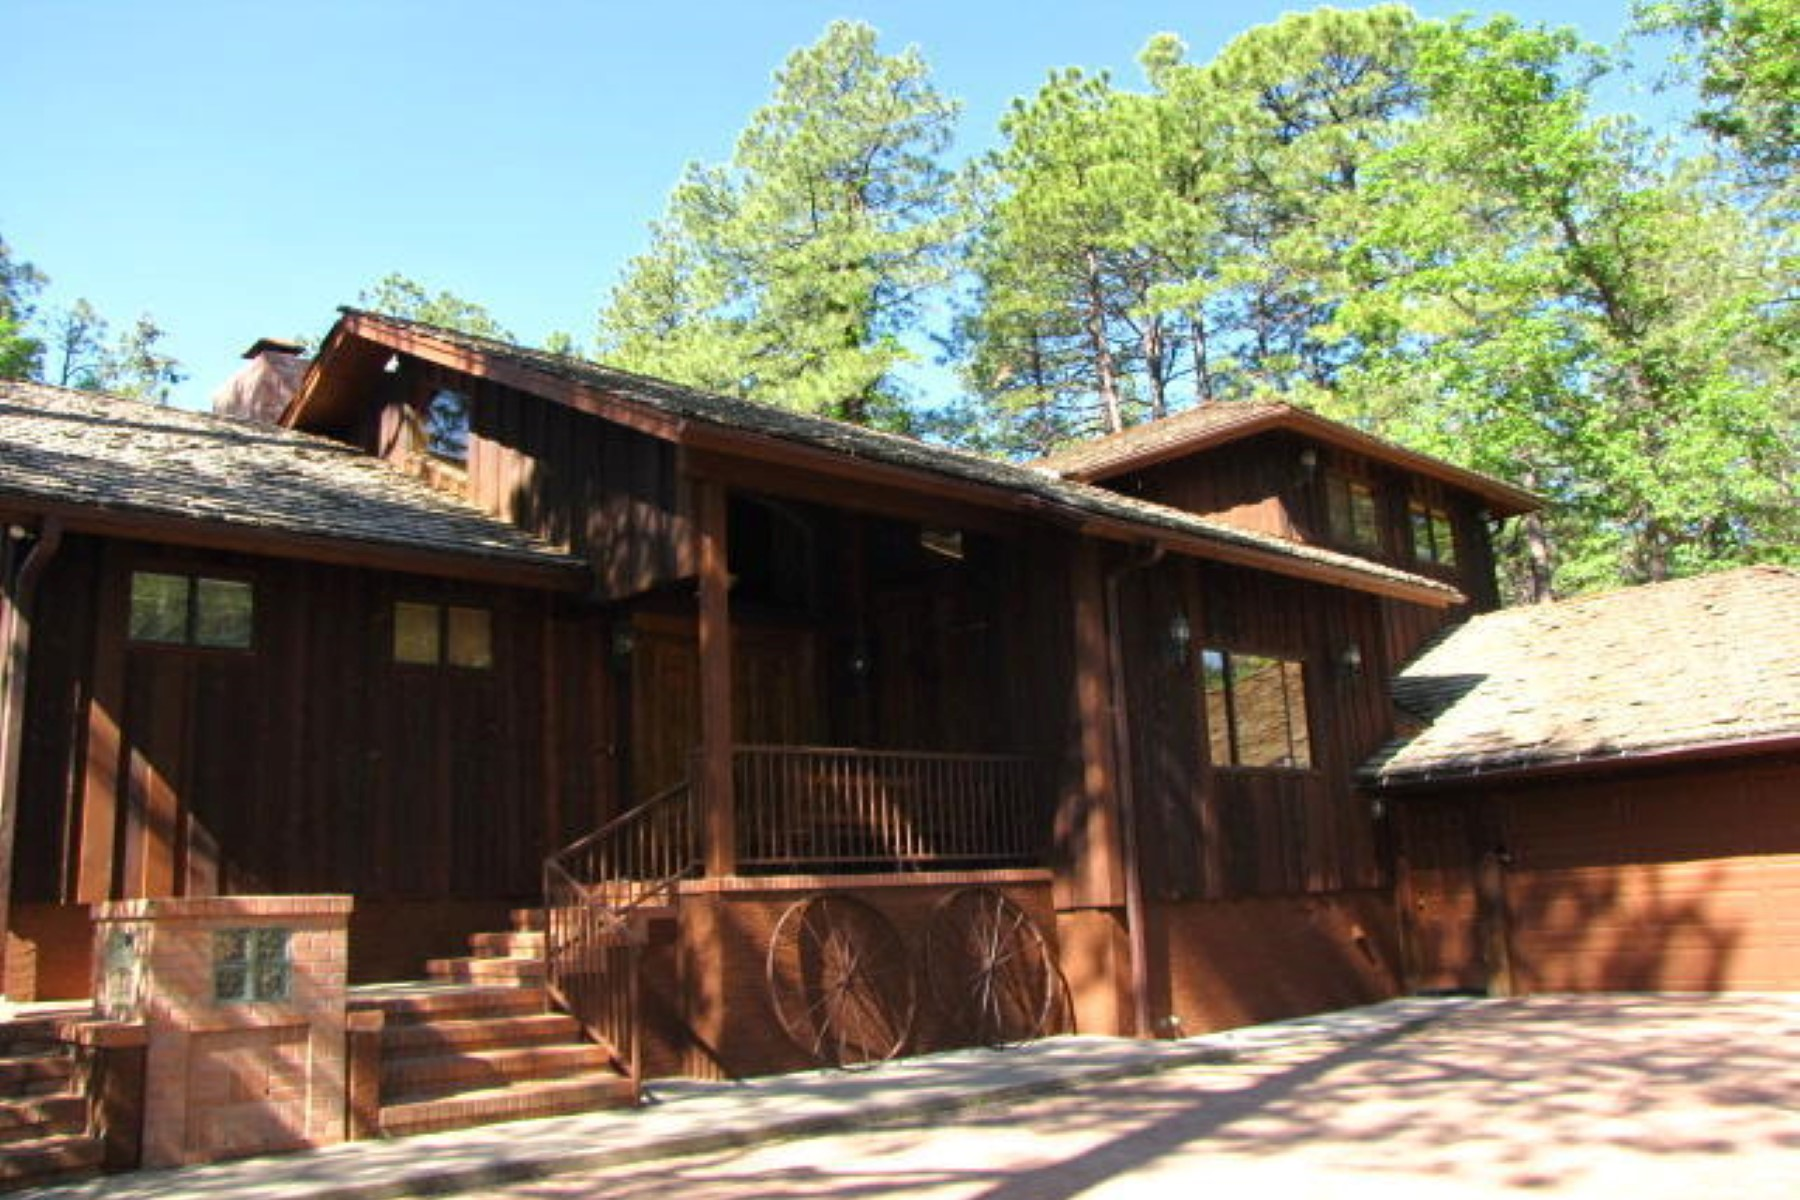 단독 가정 주택 용 매매 에 Stunning cabin on White Mountain Country Club golf course. 3175 Aspen LOOP Pinetop, 아리조나 85935 미국